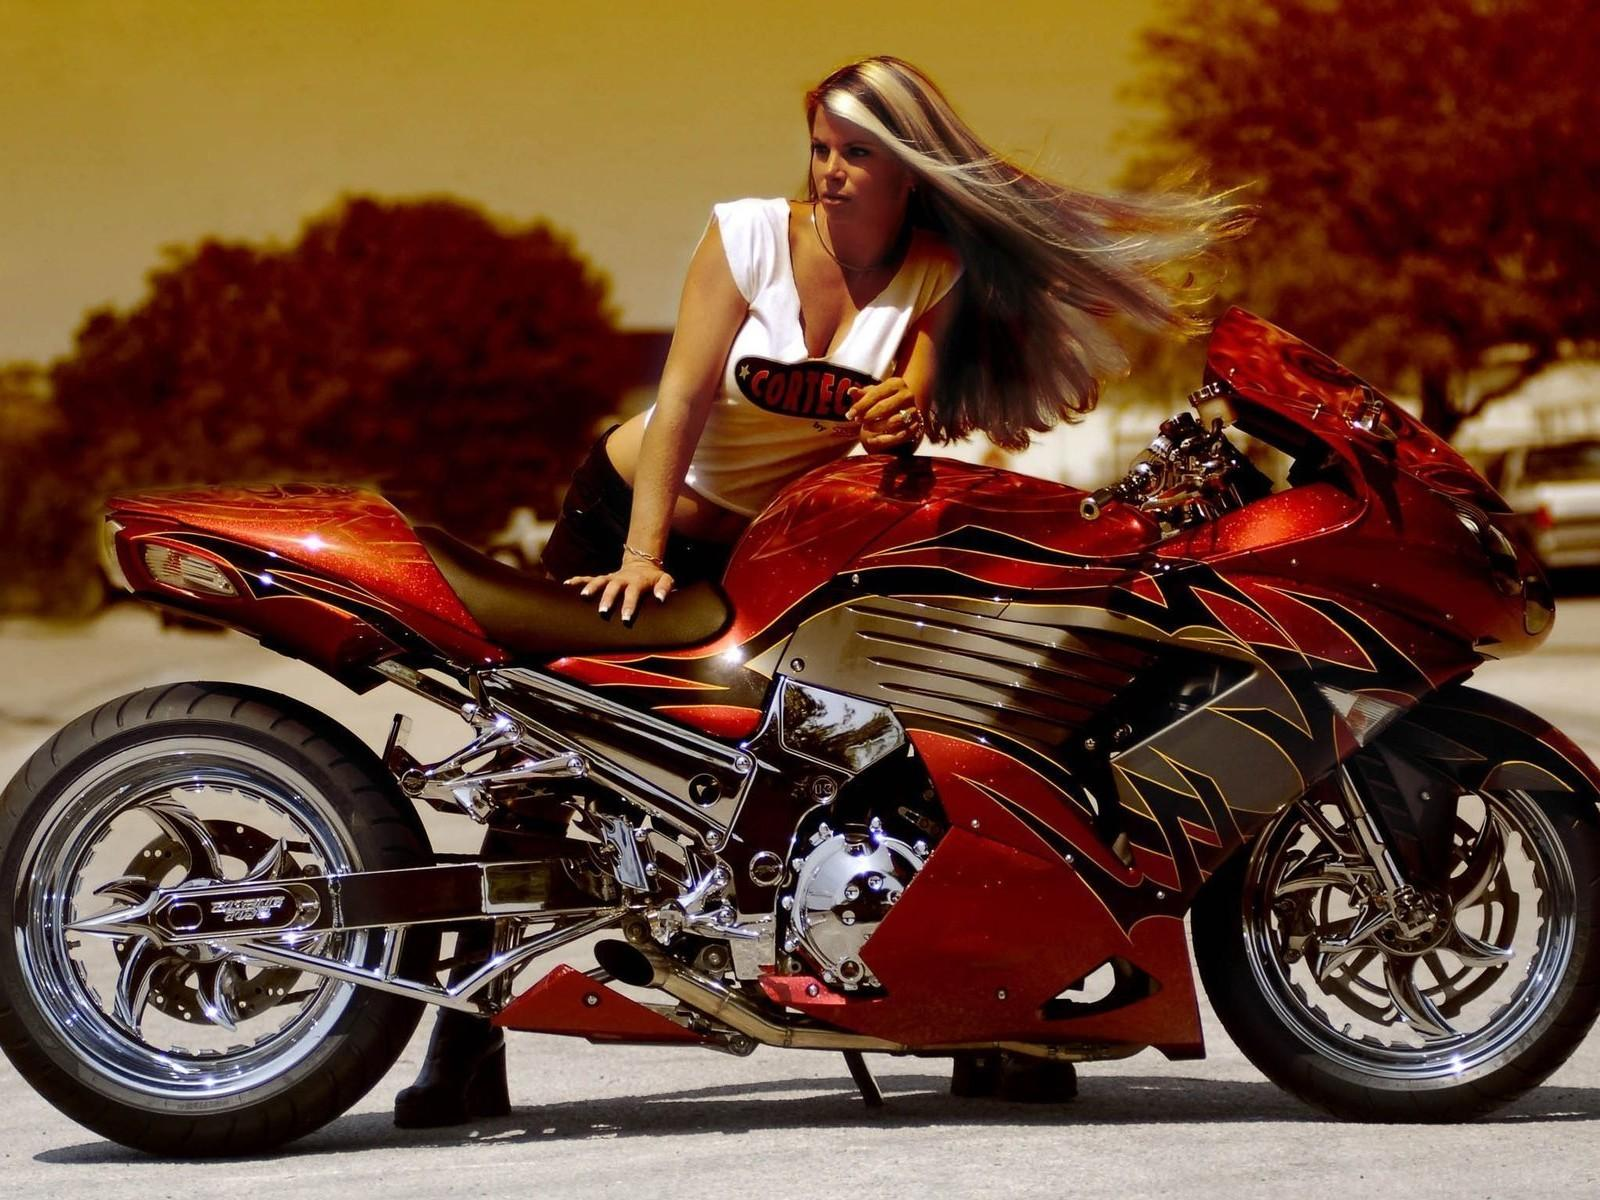 Motorcycle Wallpaper Free